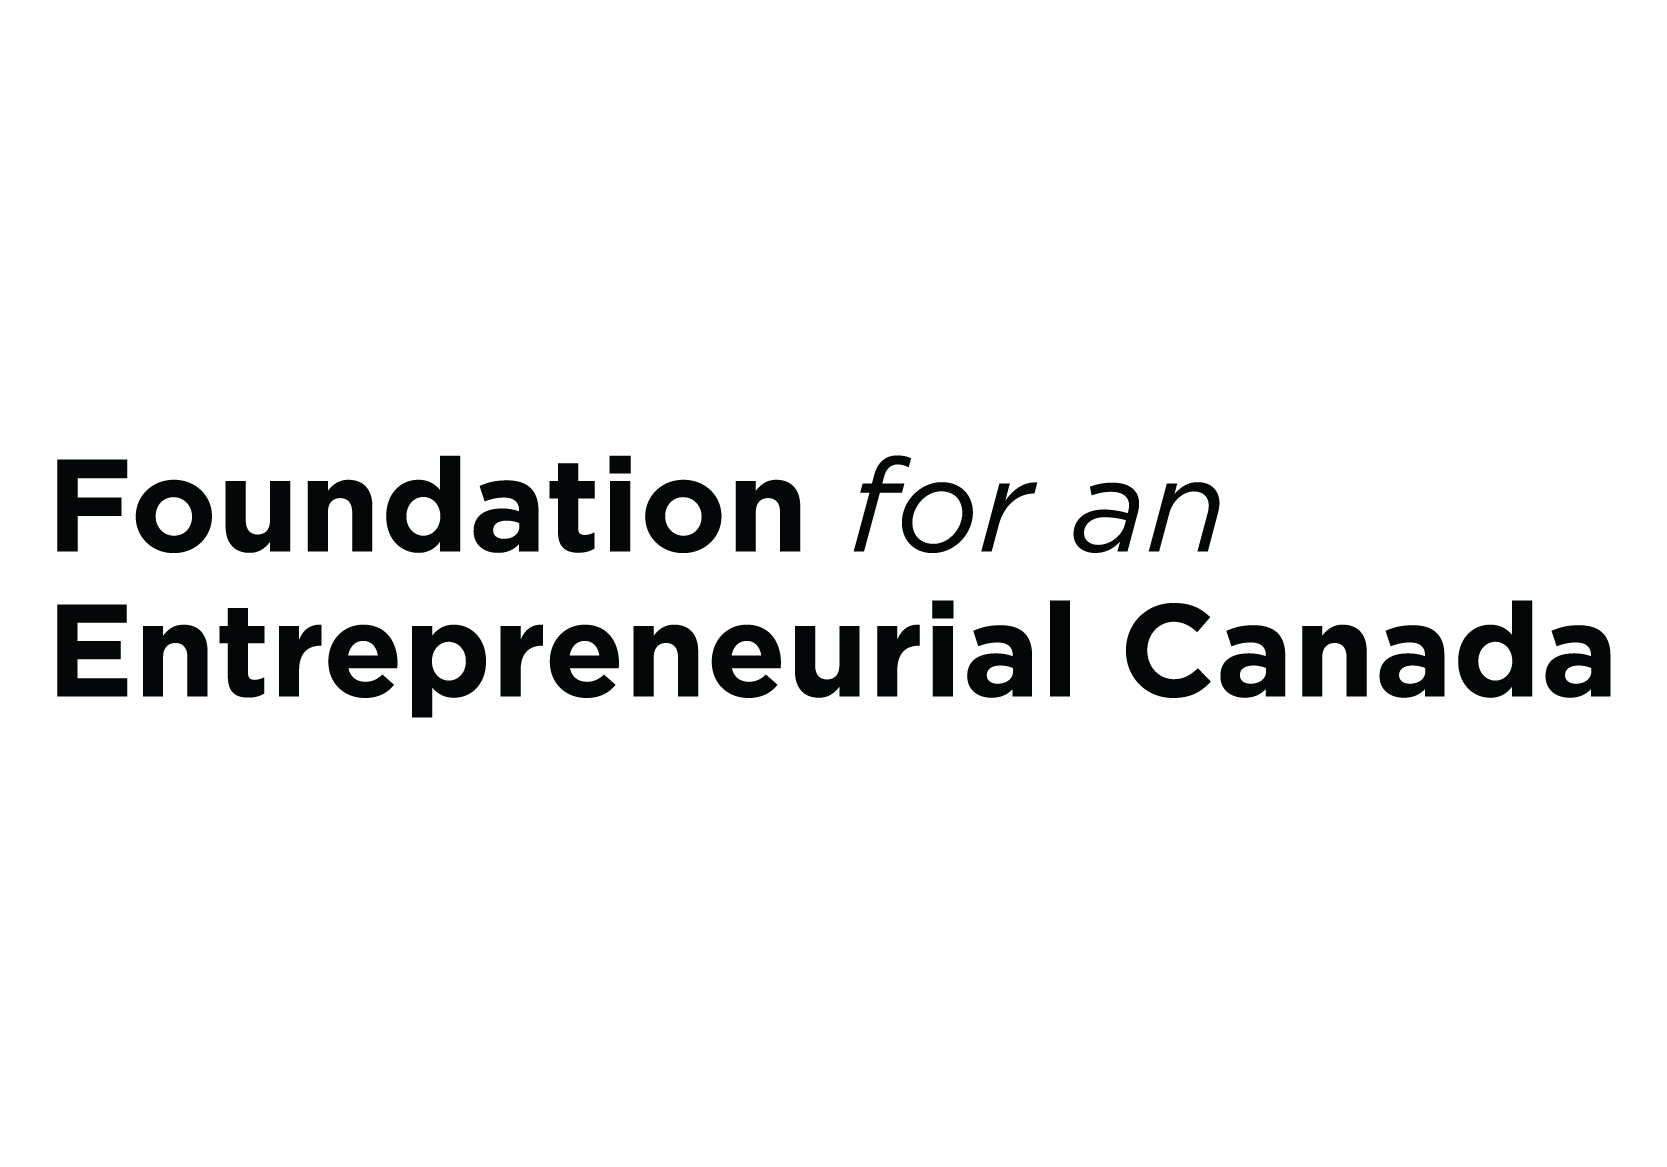 Foundation for an Entrepreneurial Canada